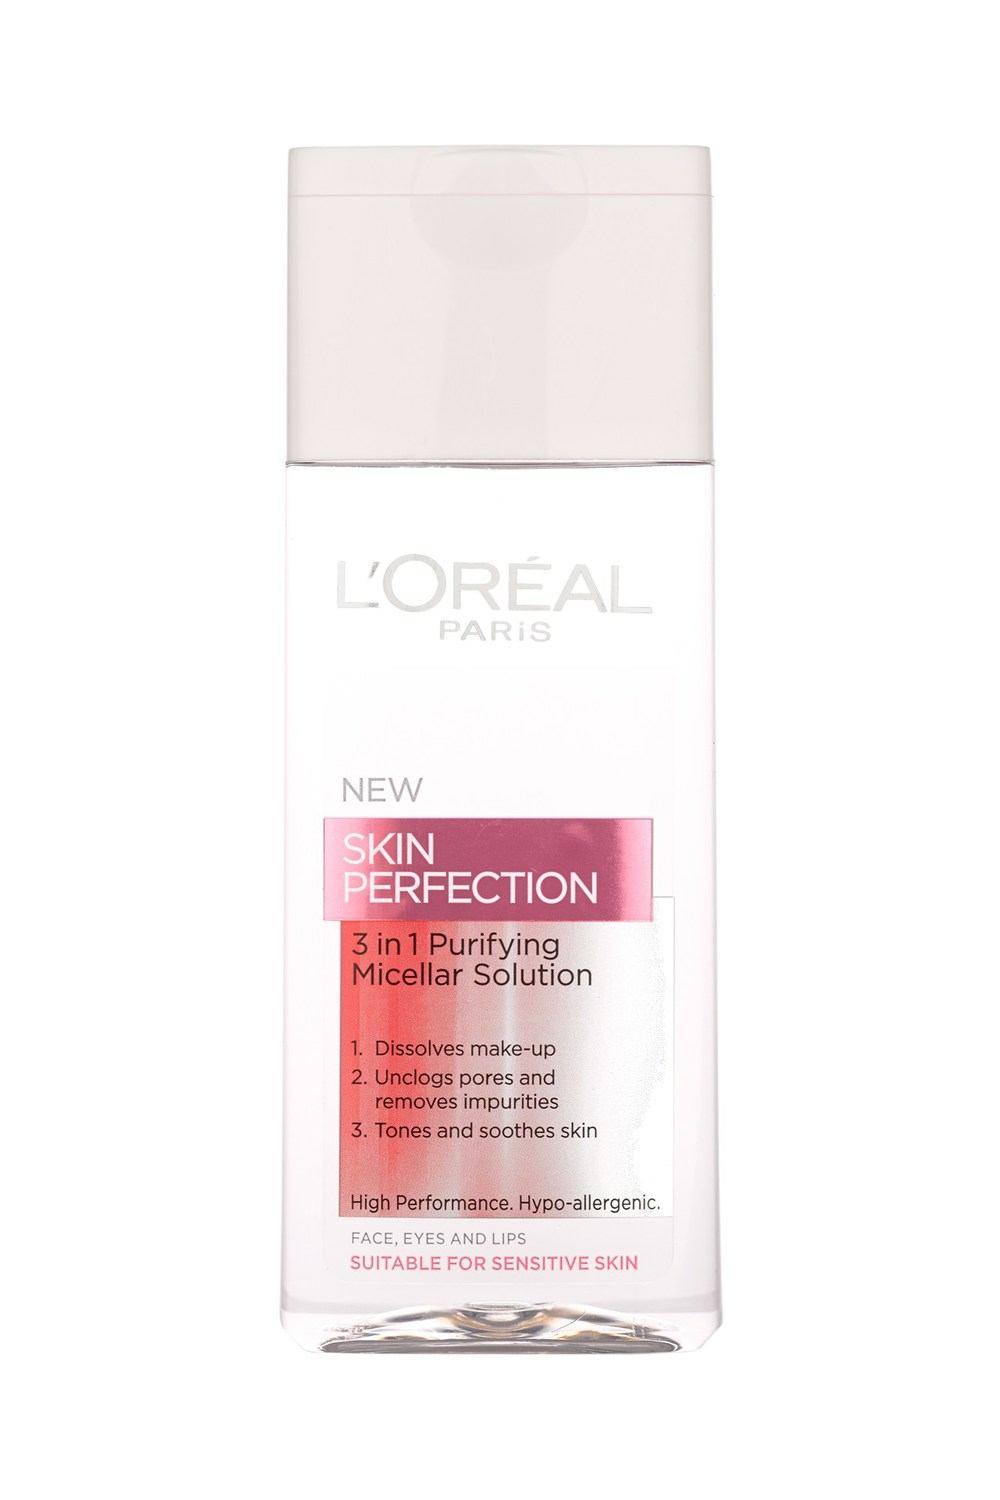 micellar-waters-loreal-8jan14-pr.jpg